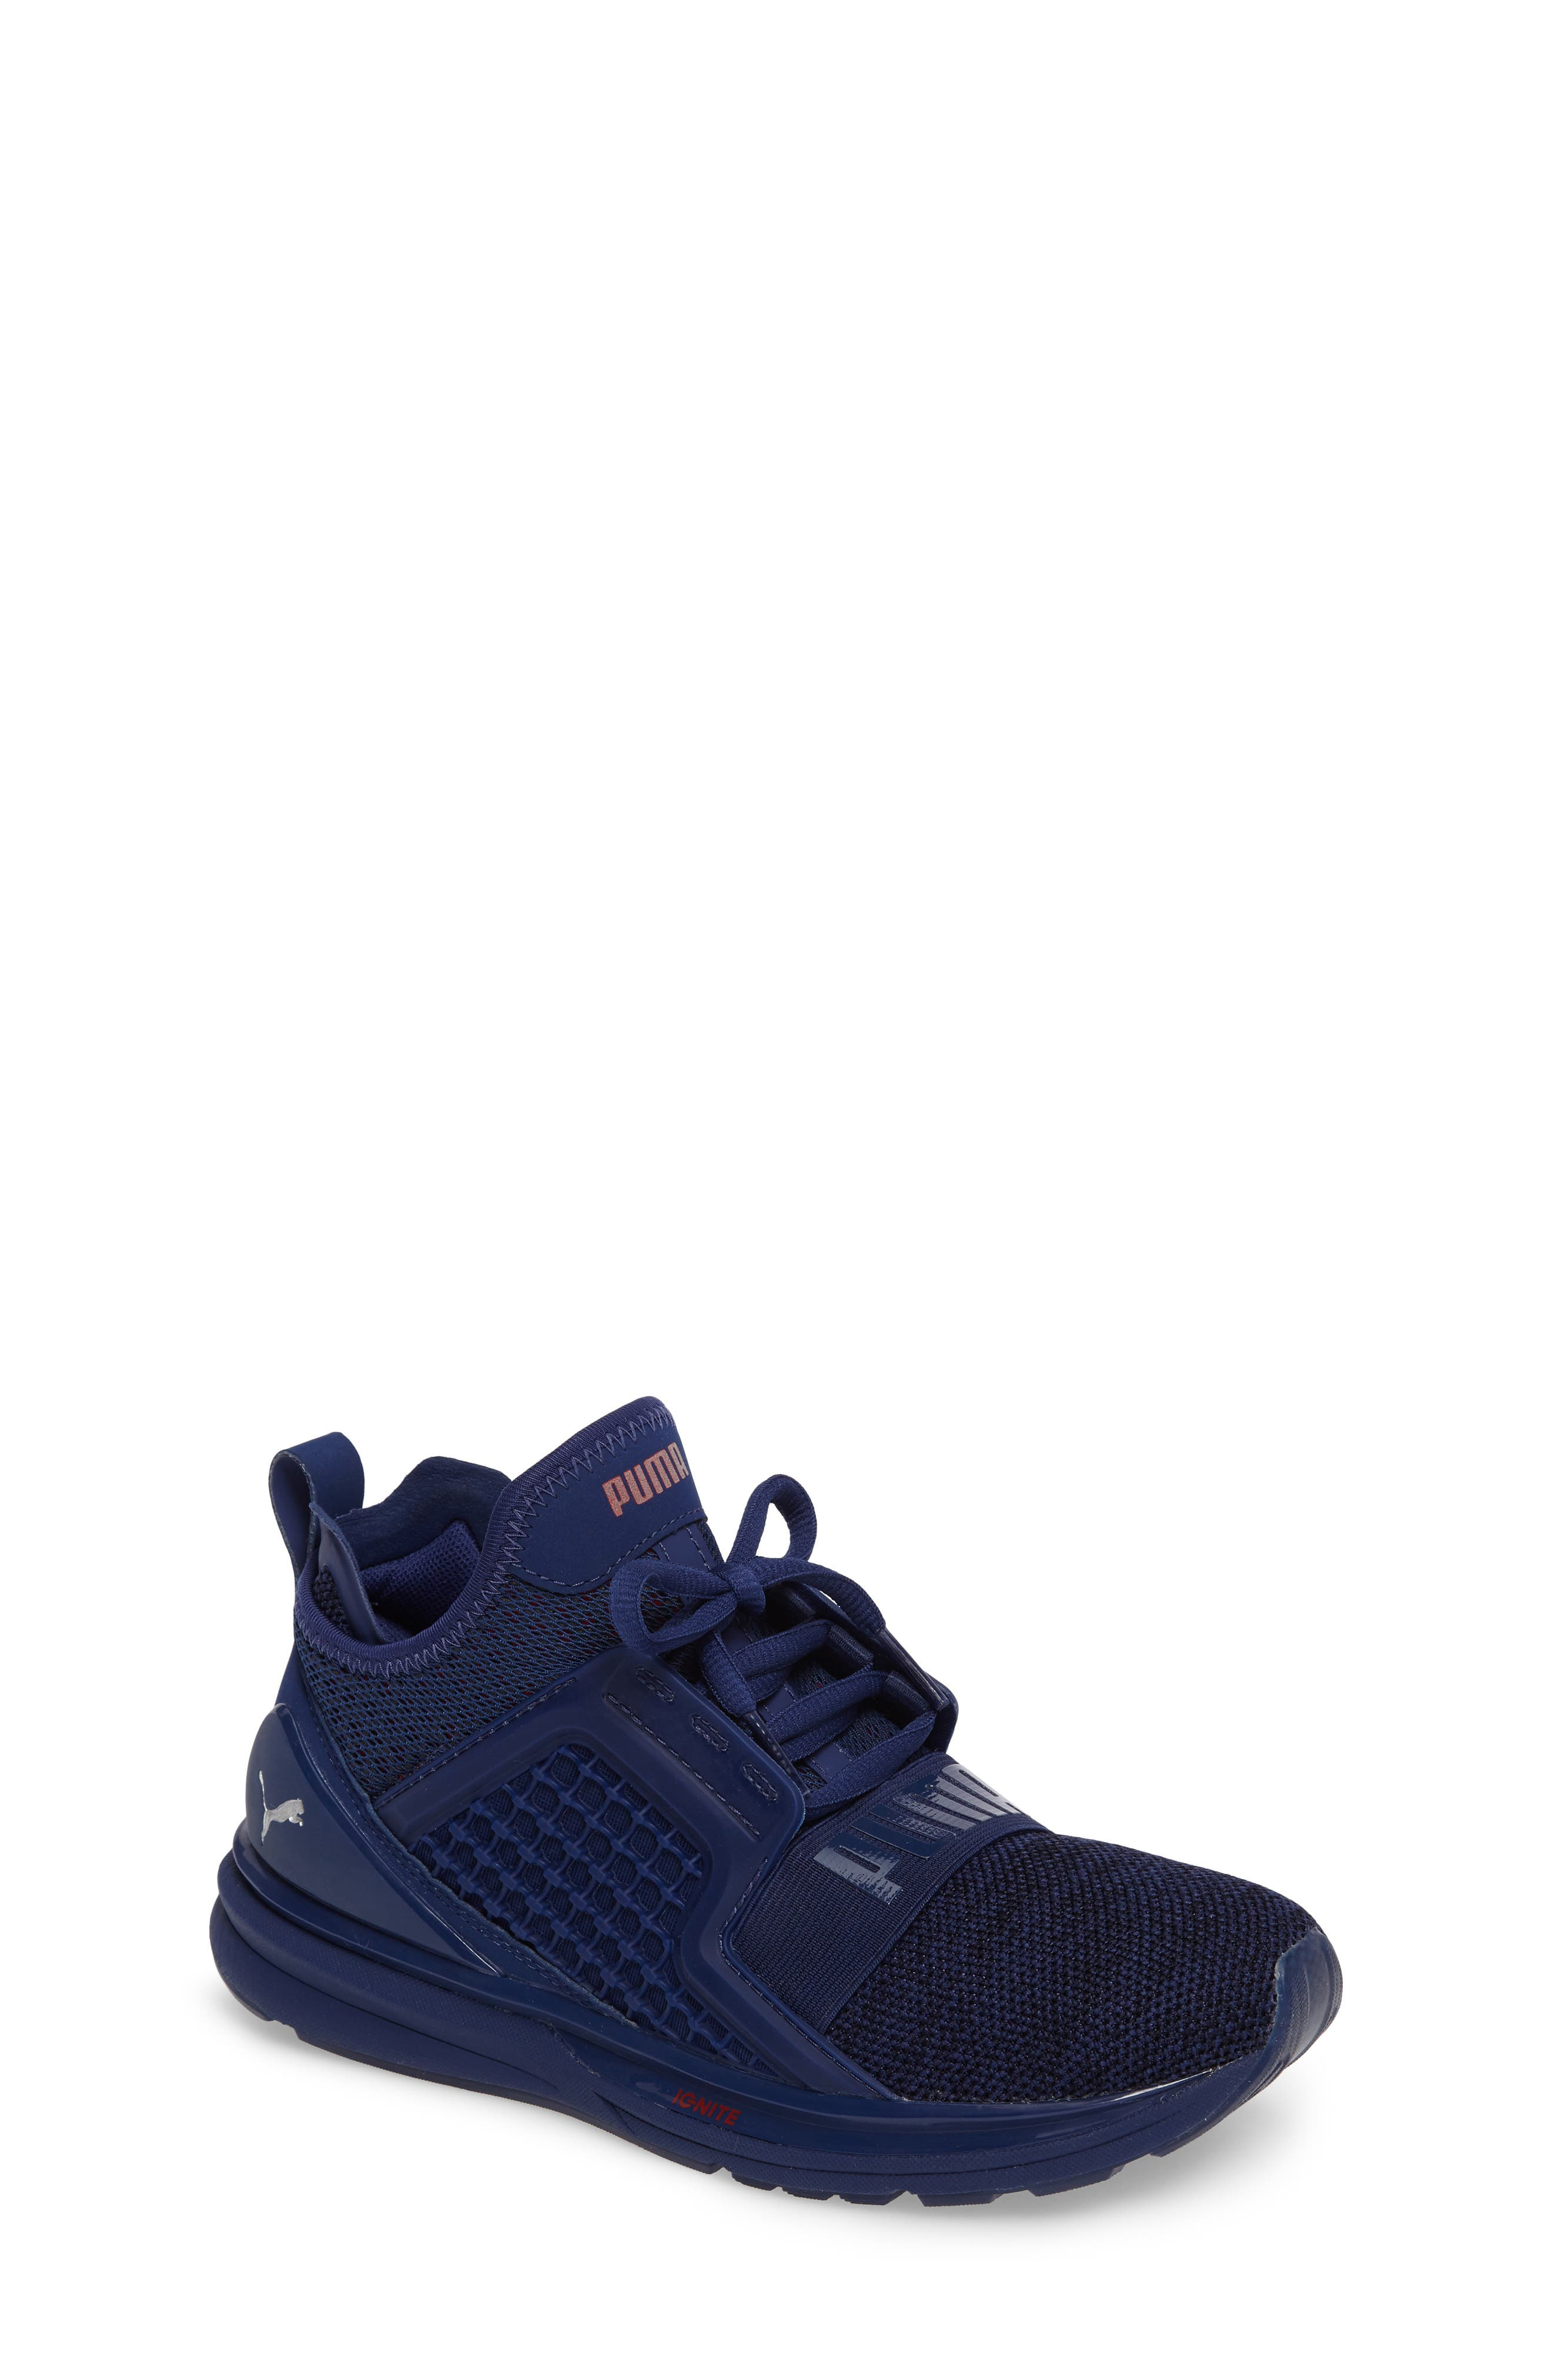 Ignite Limitless Sneaker,                             Main thumbnail 1, color,                             Blue